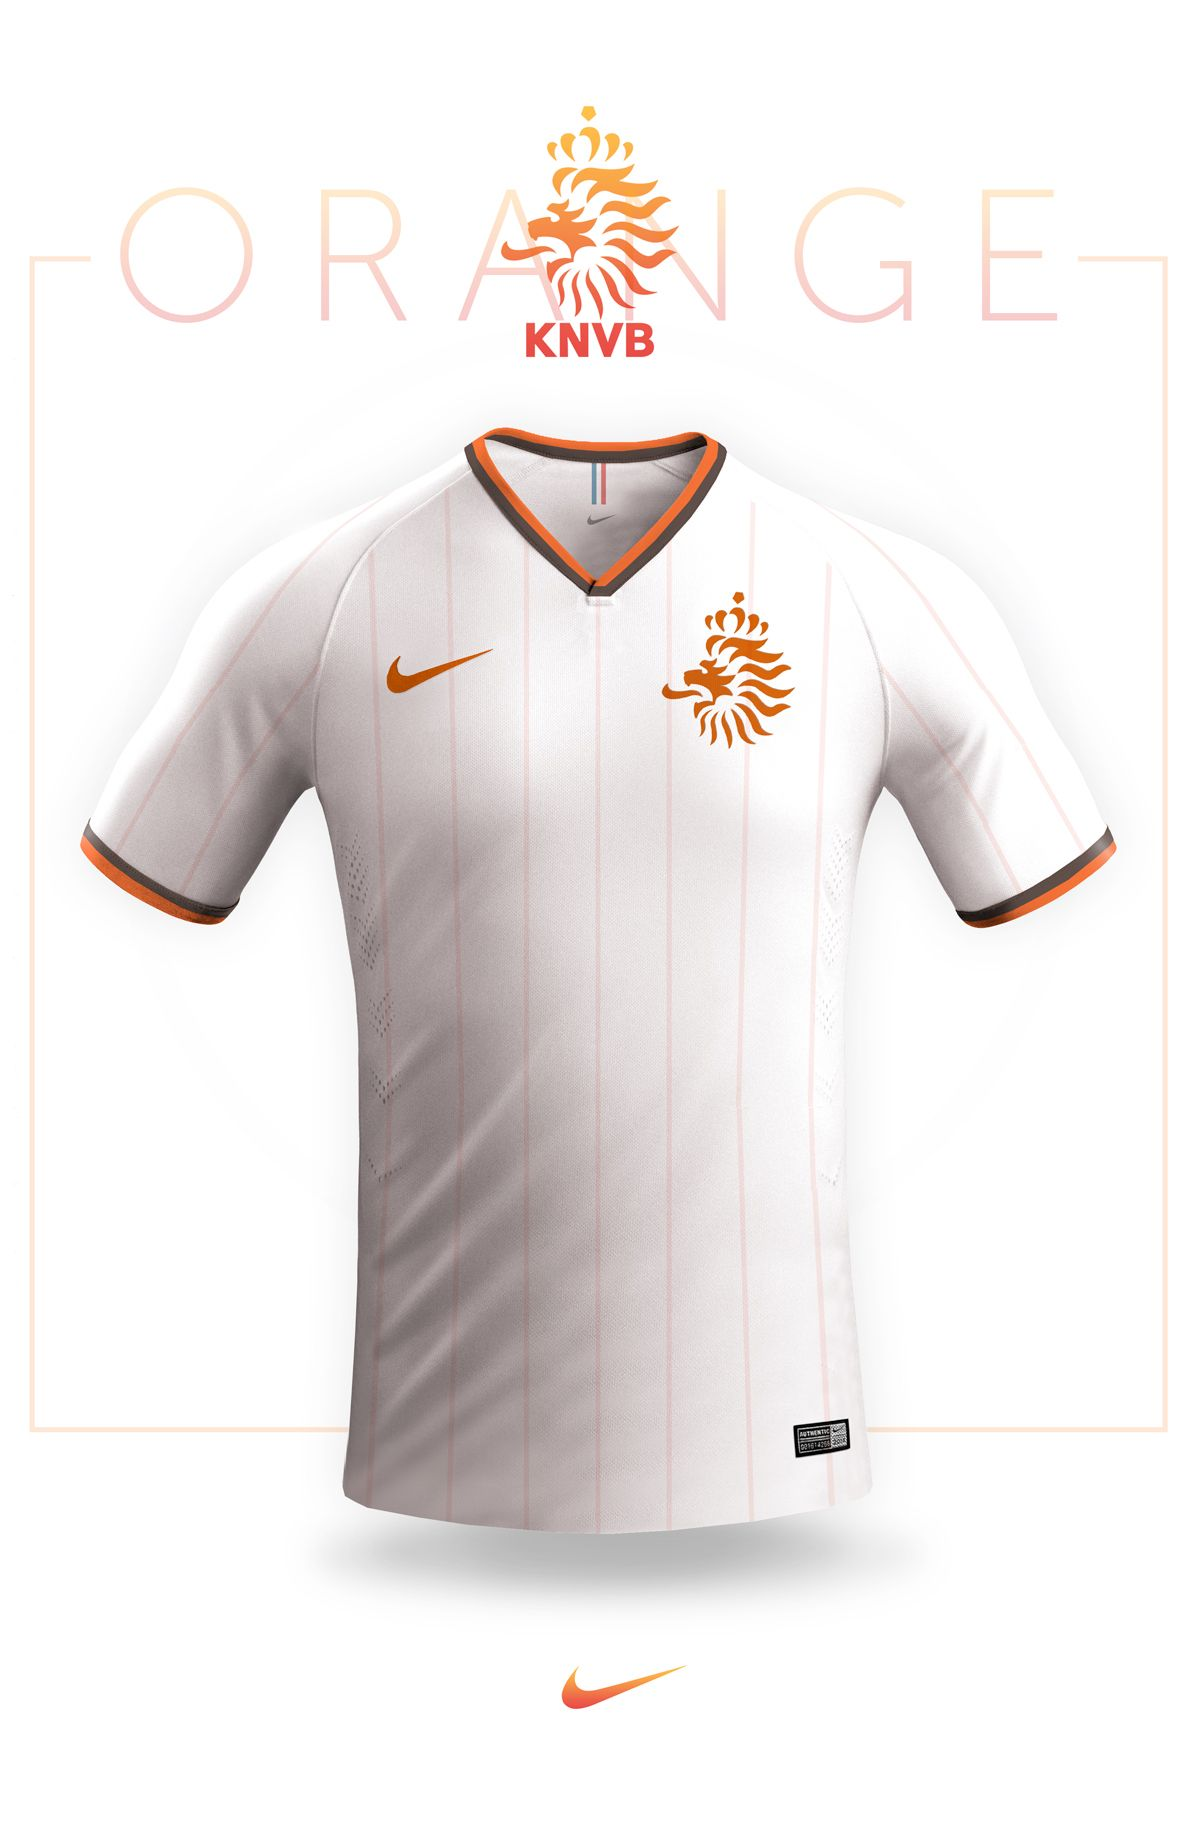 National Football Teams Concept Jersey Design Nike Sports Jersey Design Jersey Design Soccer Shirts